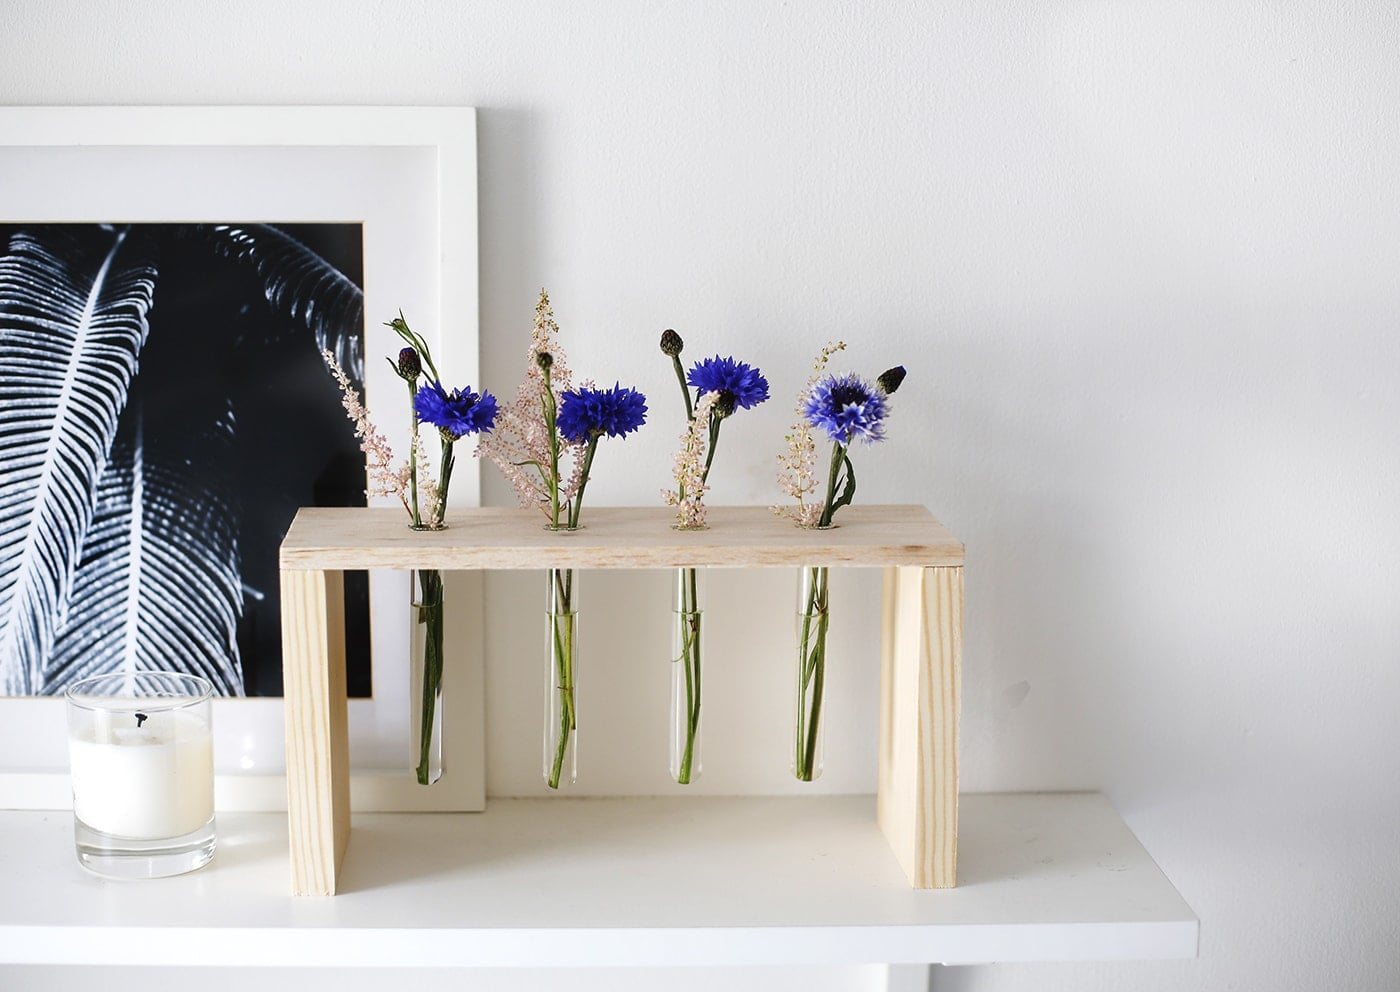 DIY floral display   easy craft tutorial perfect for entertaining   home idea